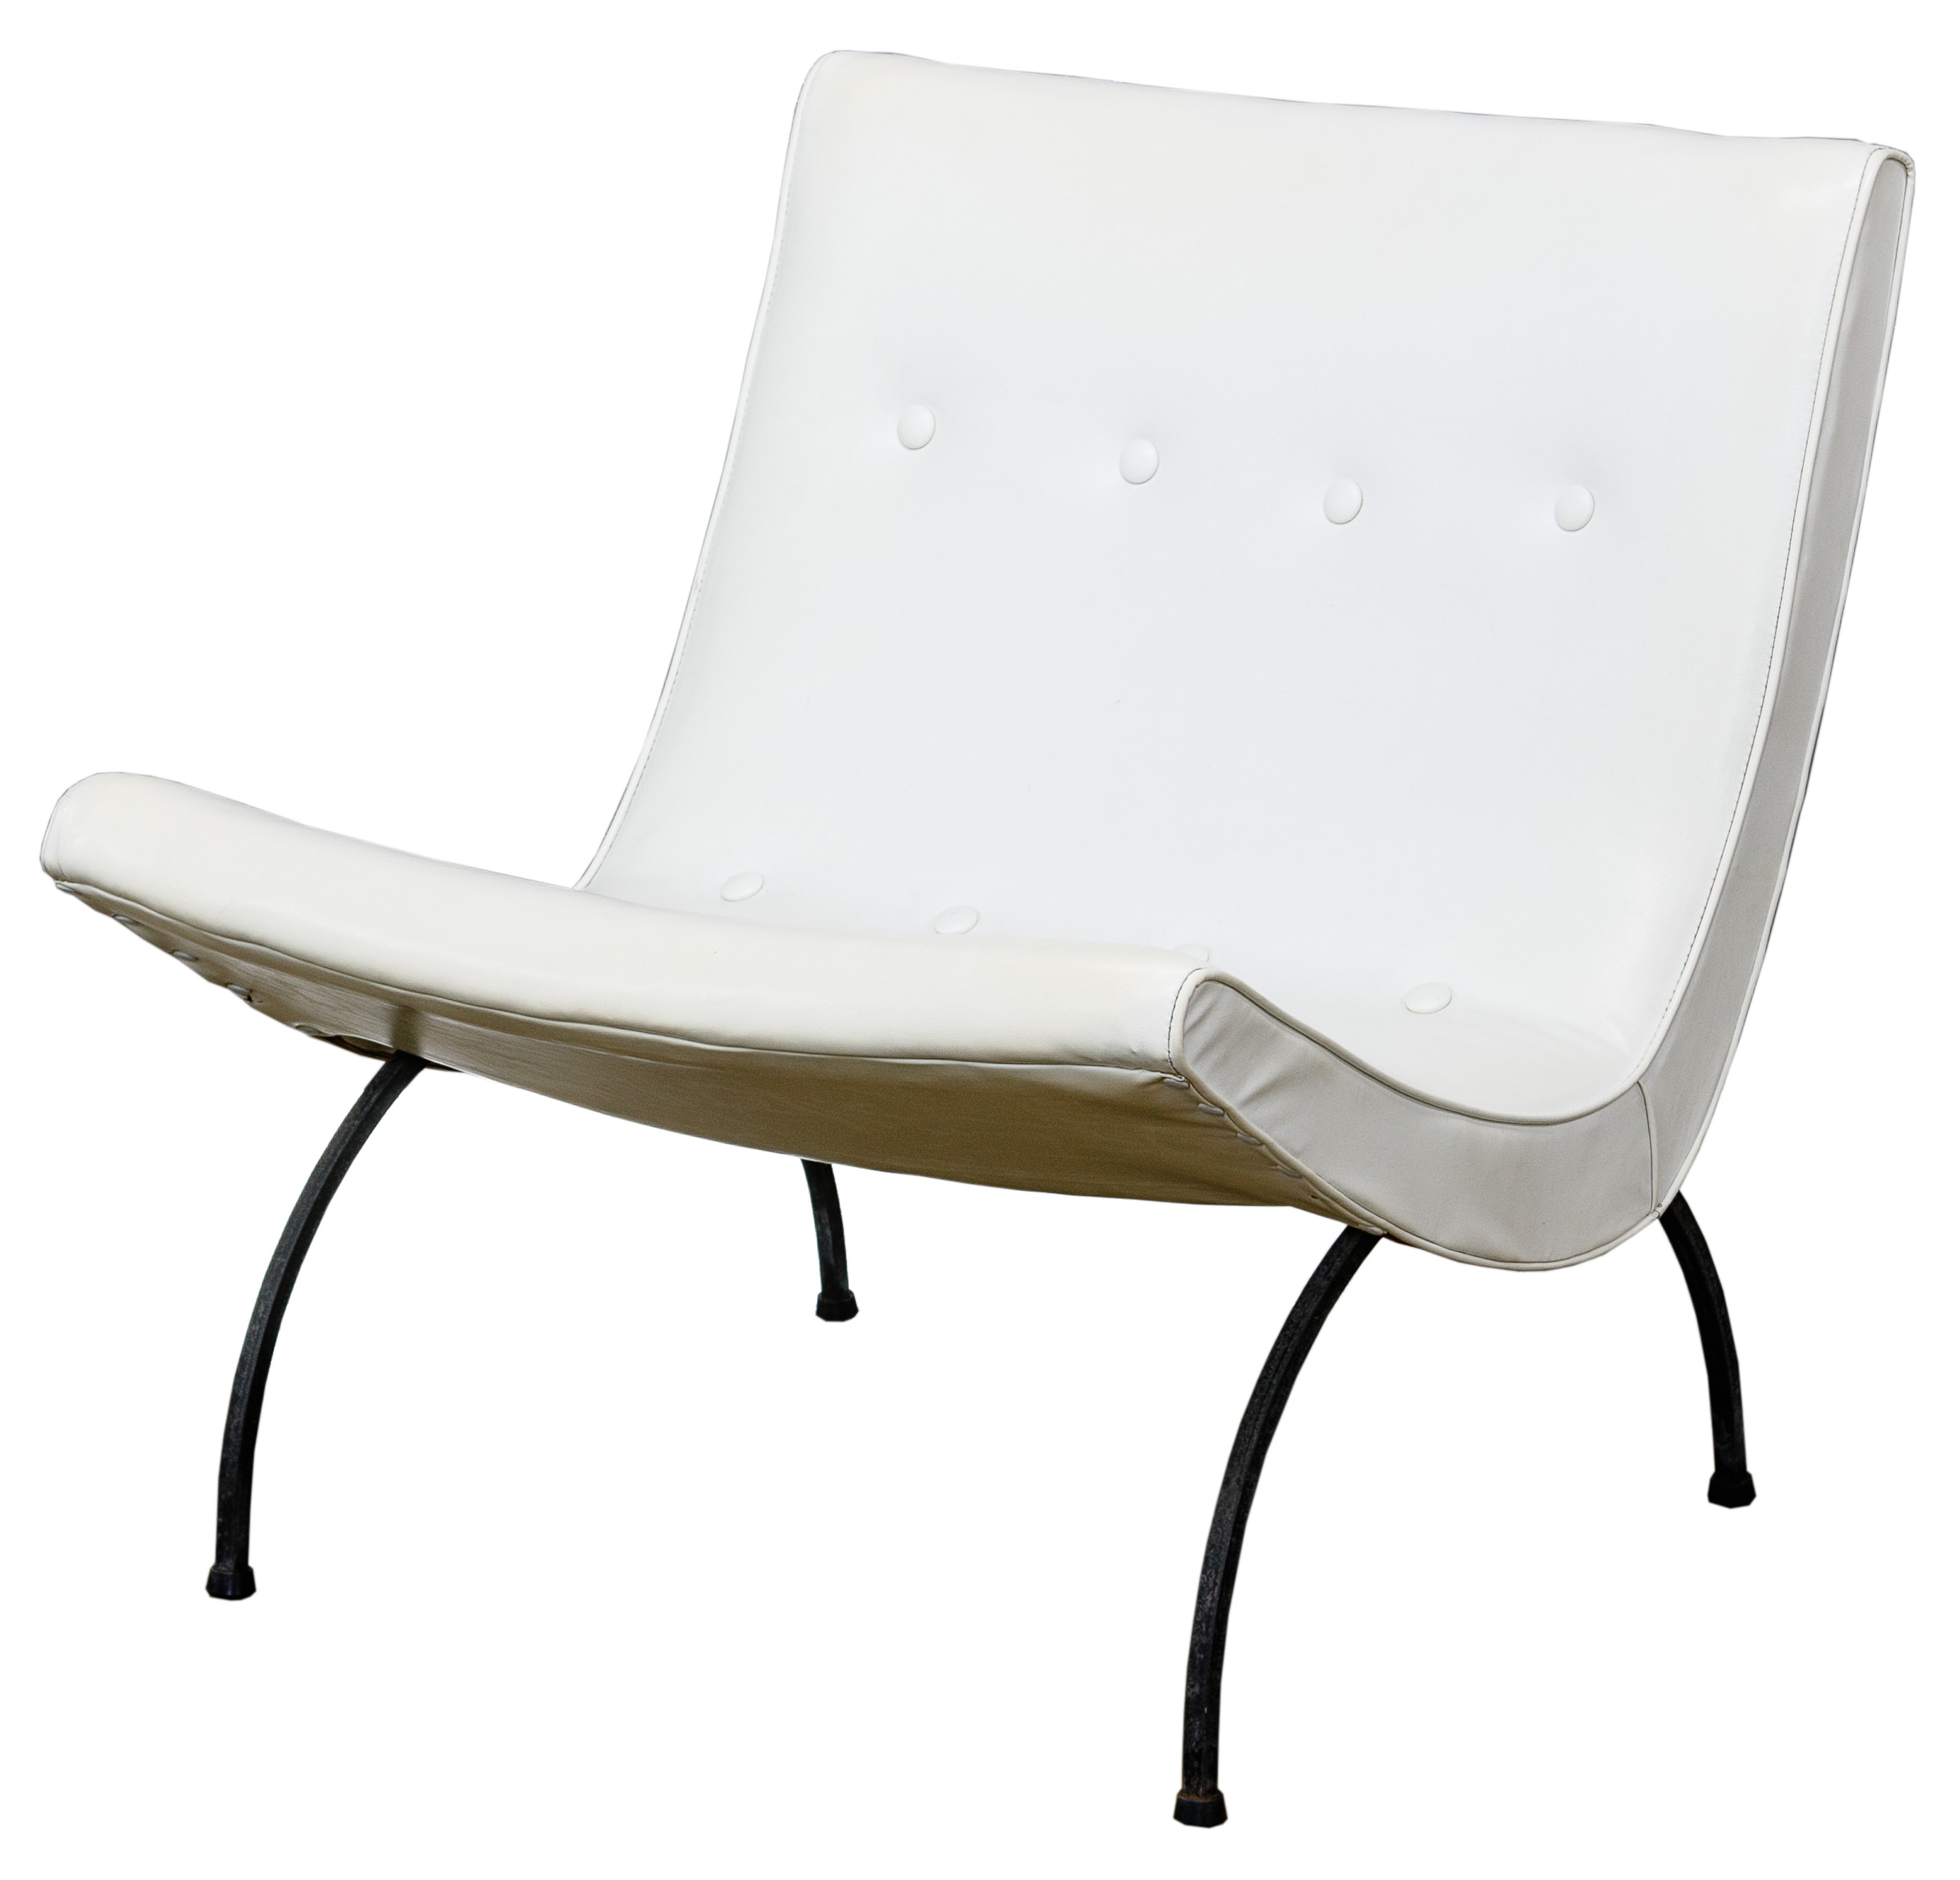 Wondrous Mcm White Vinyl Scoop Chair By Milo Baughman Gmtry Best Dining Table And Chair Ideas Images Gmtryco